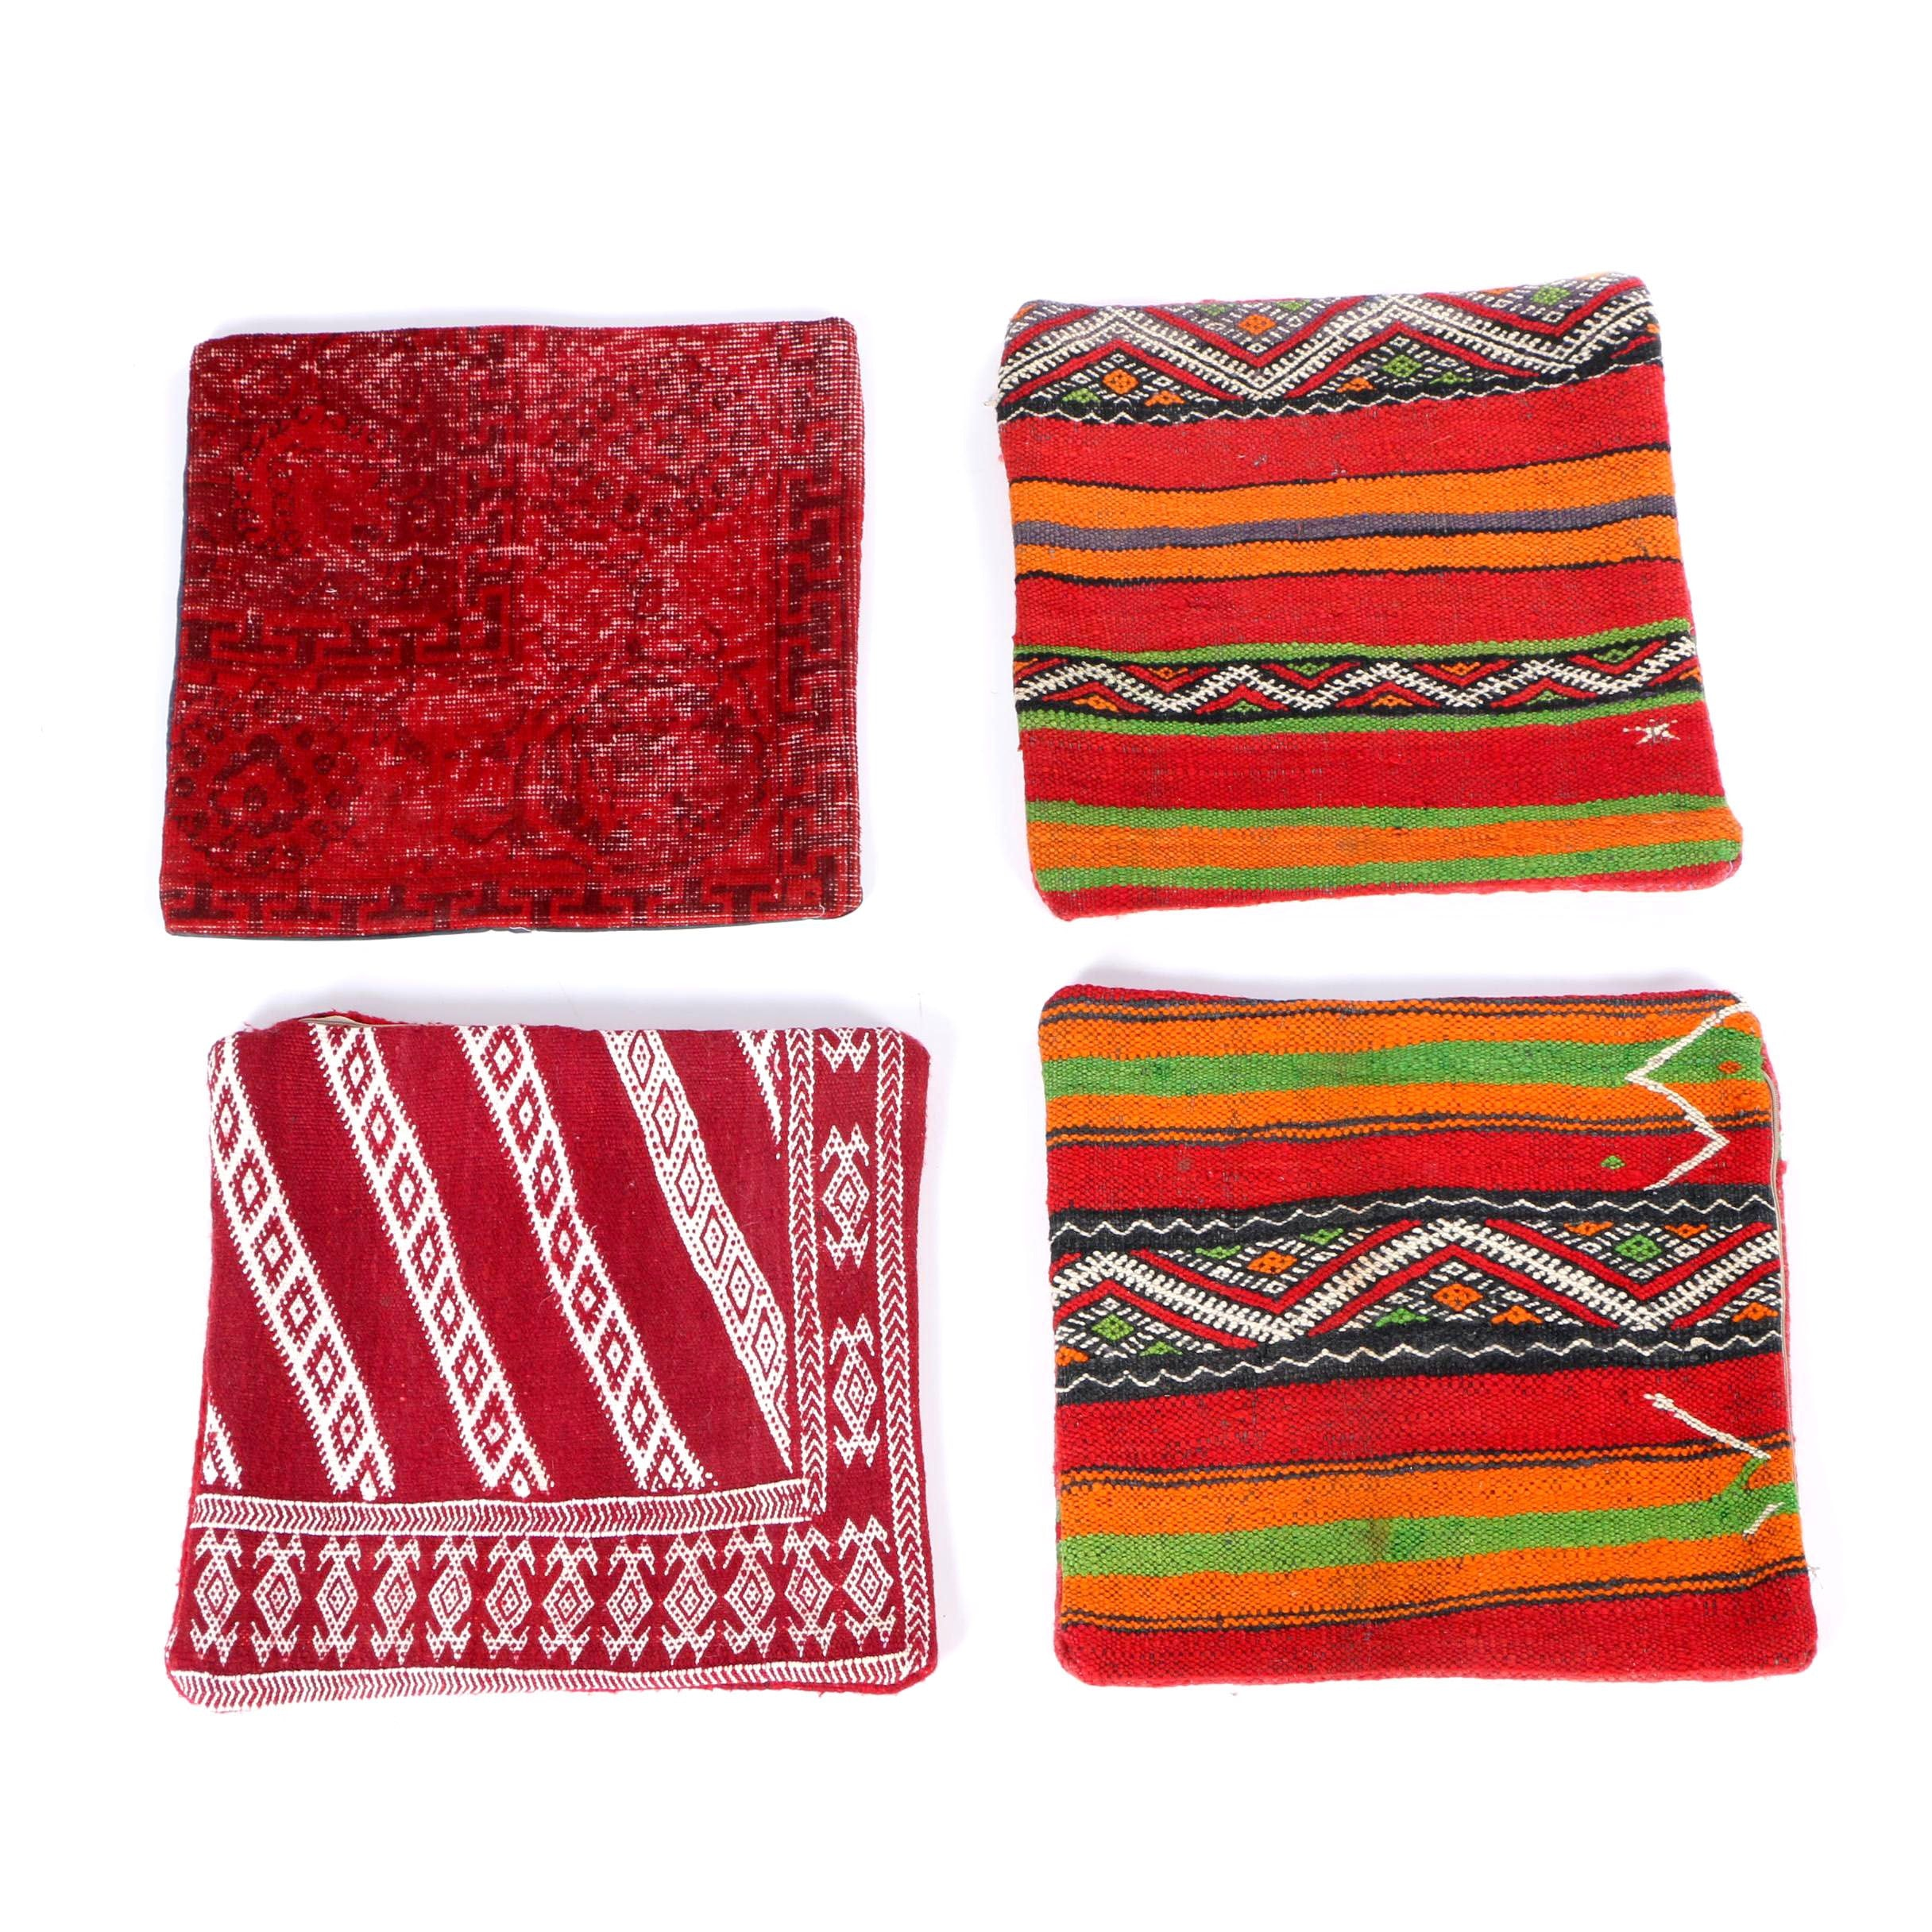 Grouping of Omar Kilim and Turkish Carpet Pillow Covers